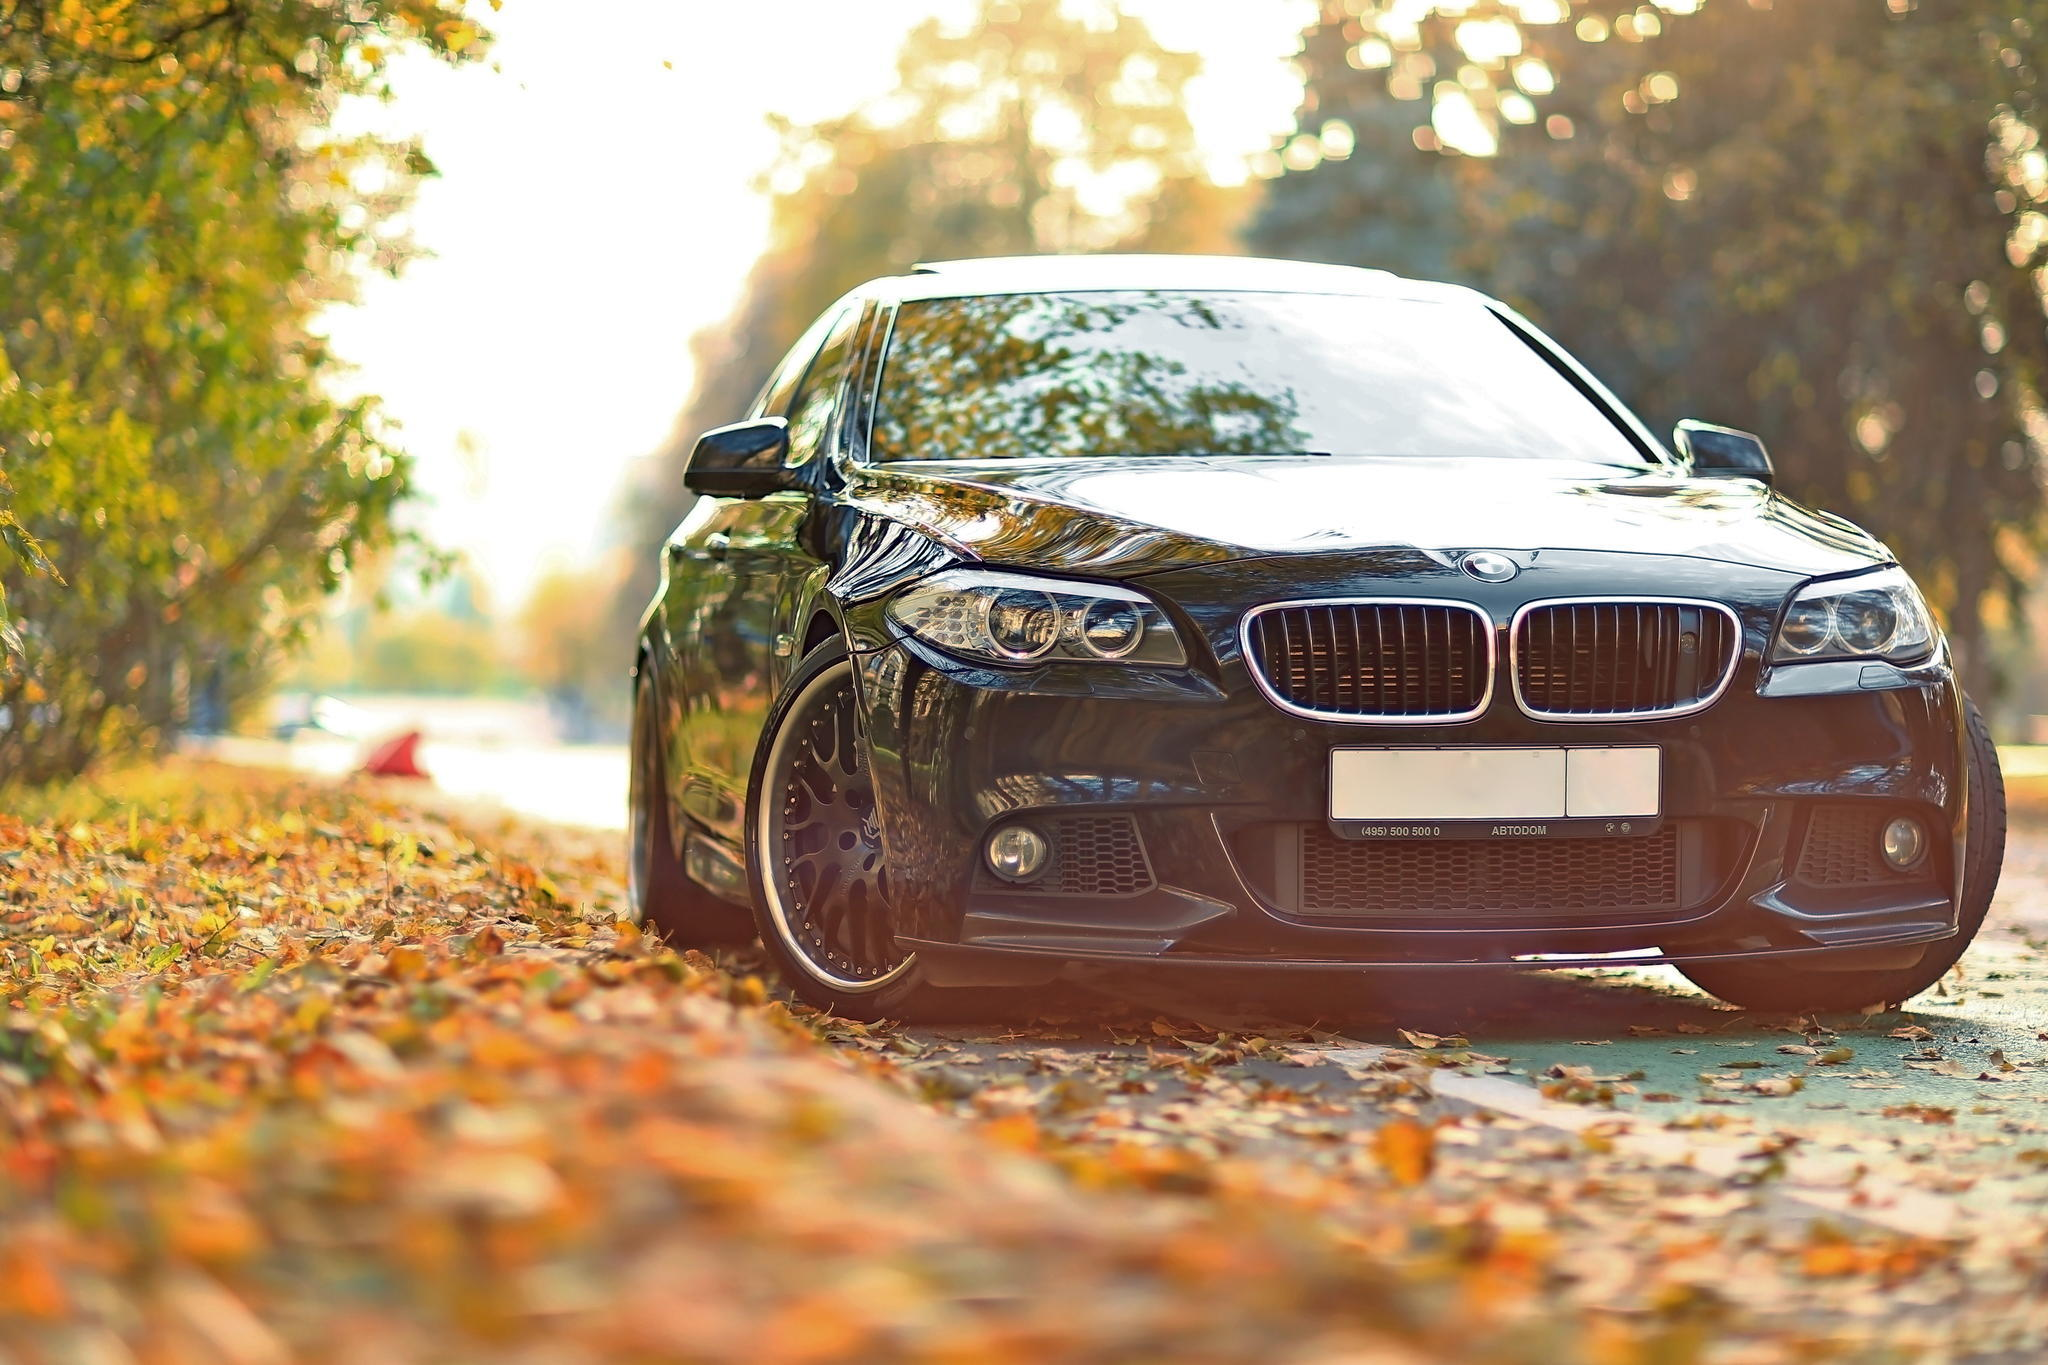 used bmw for sale in Denver, Co